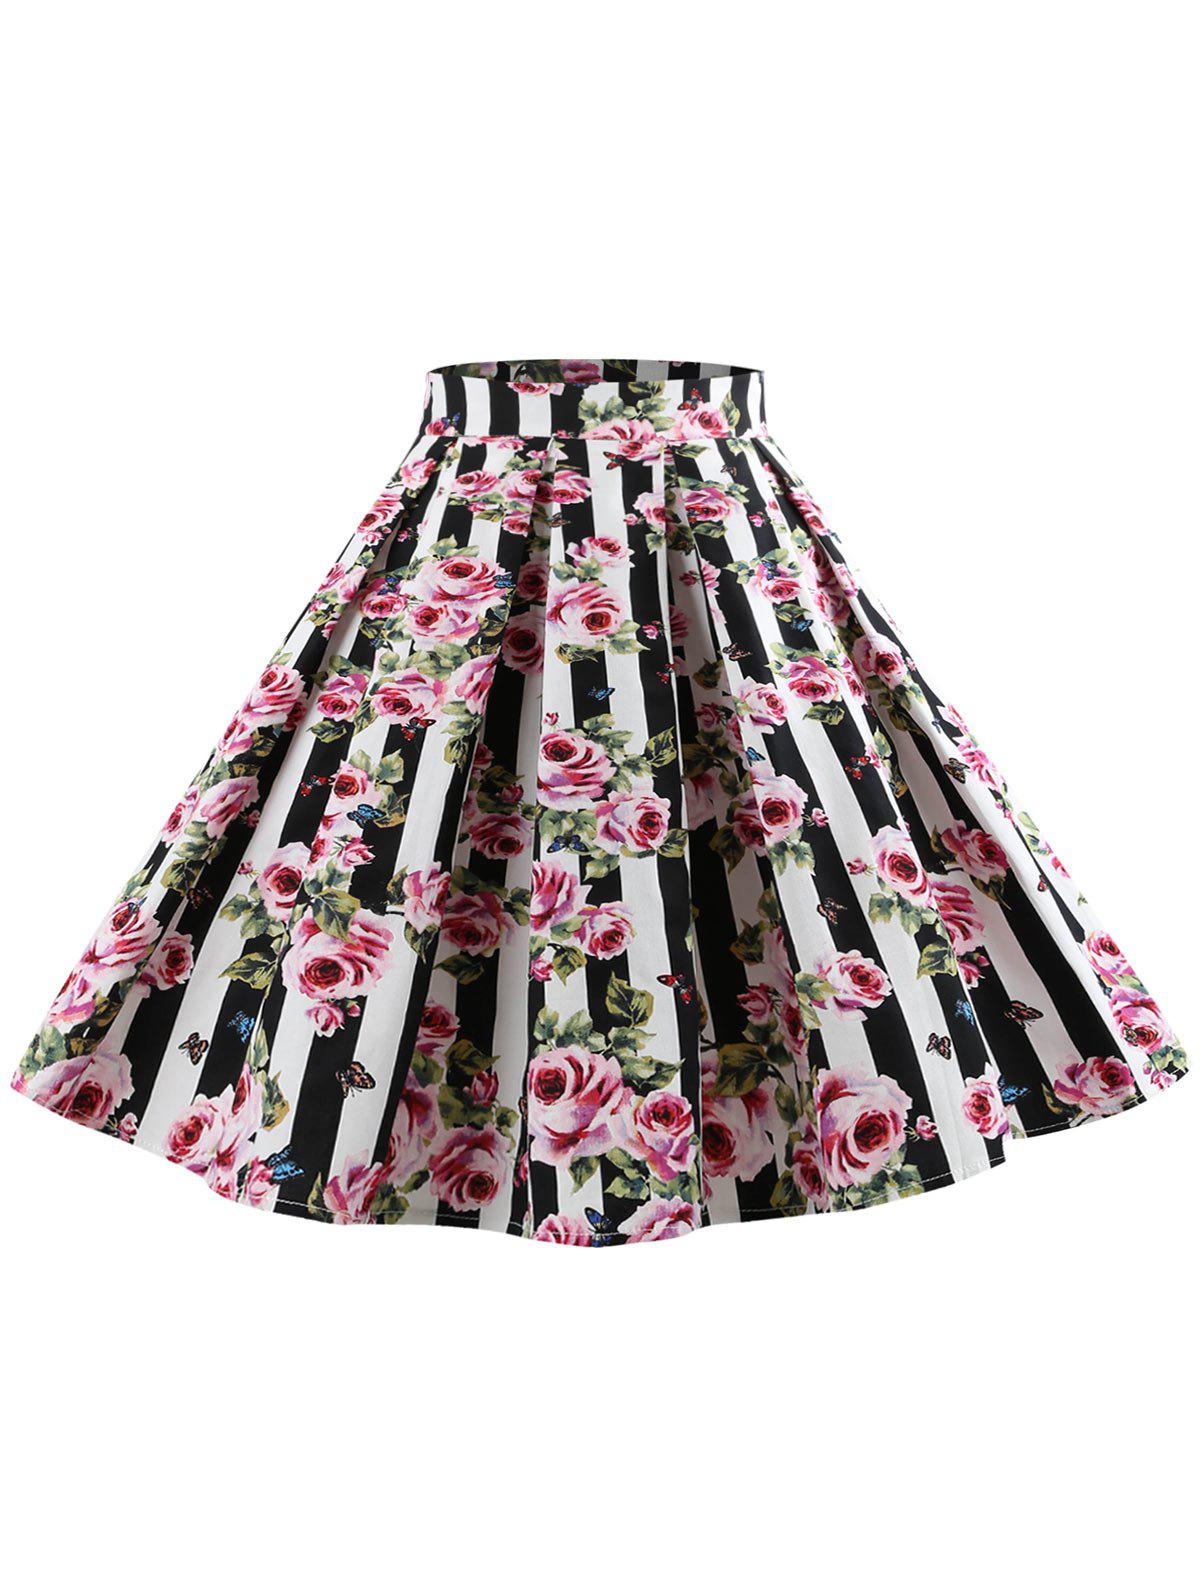 High Waist Floral Print Skirt - multicolor M